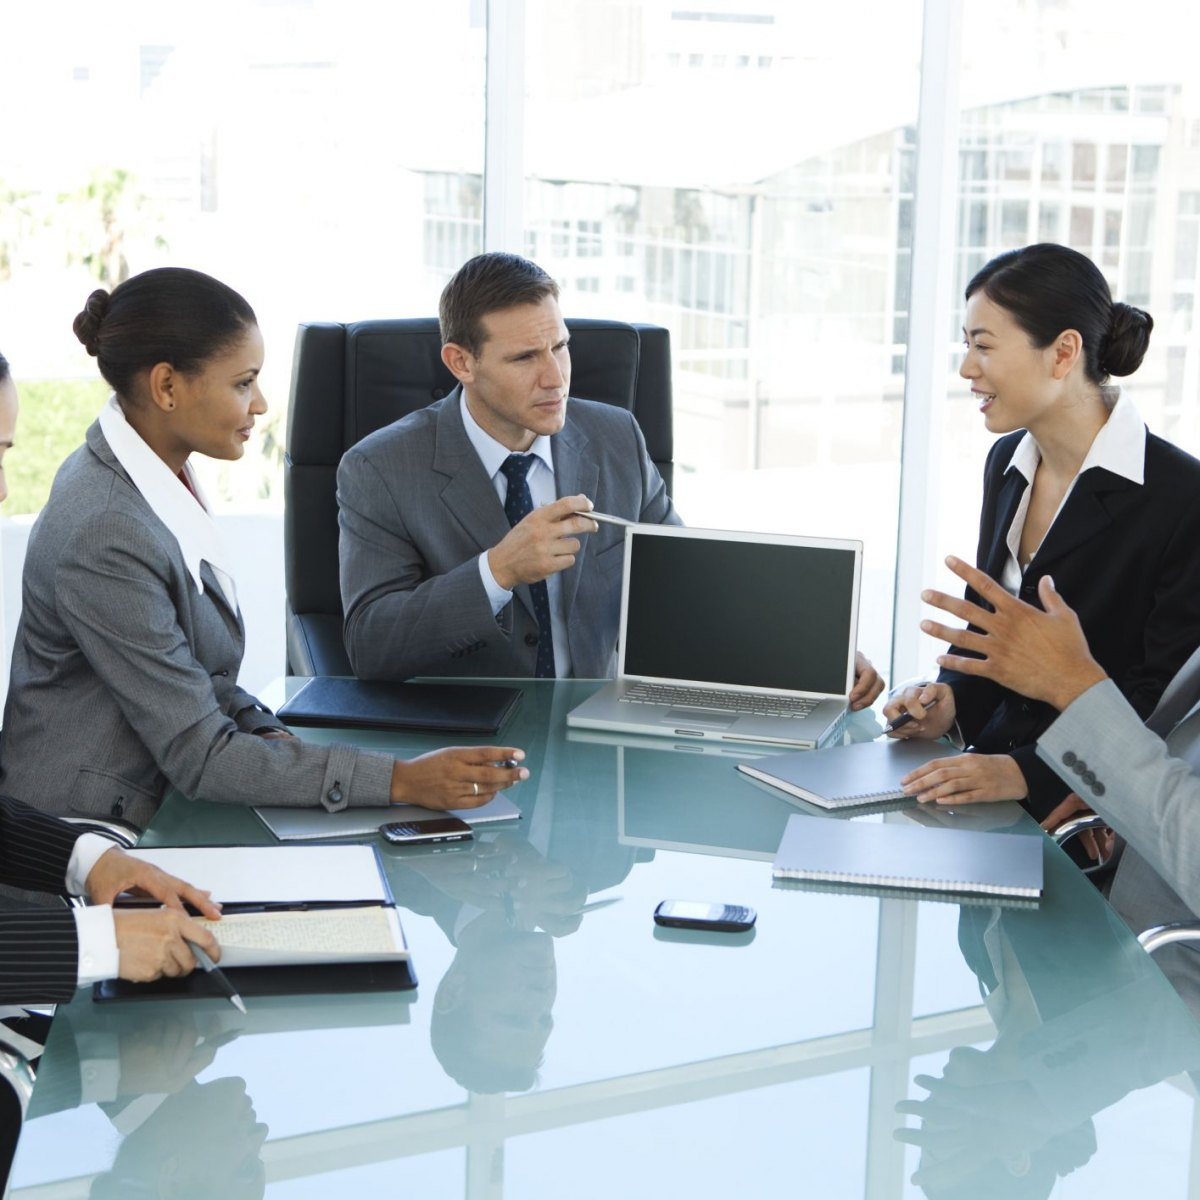 Training Business Meeting Planning and Management